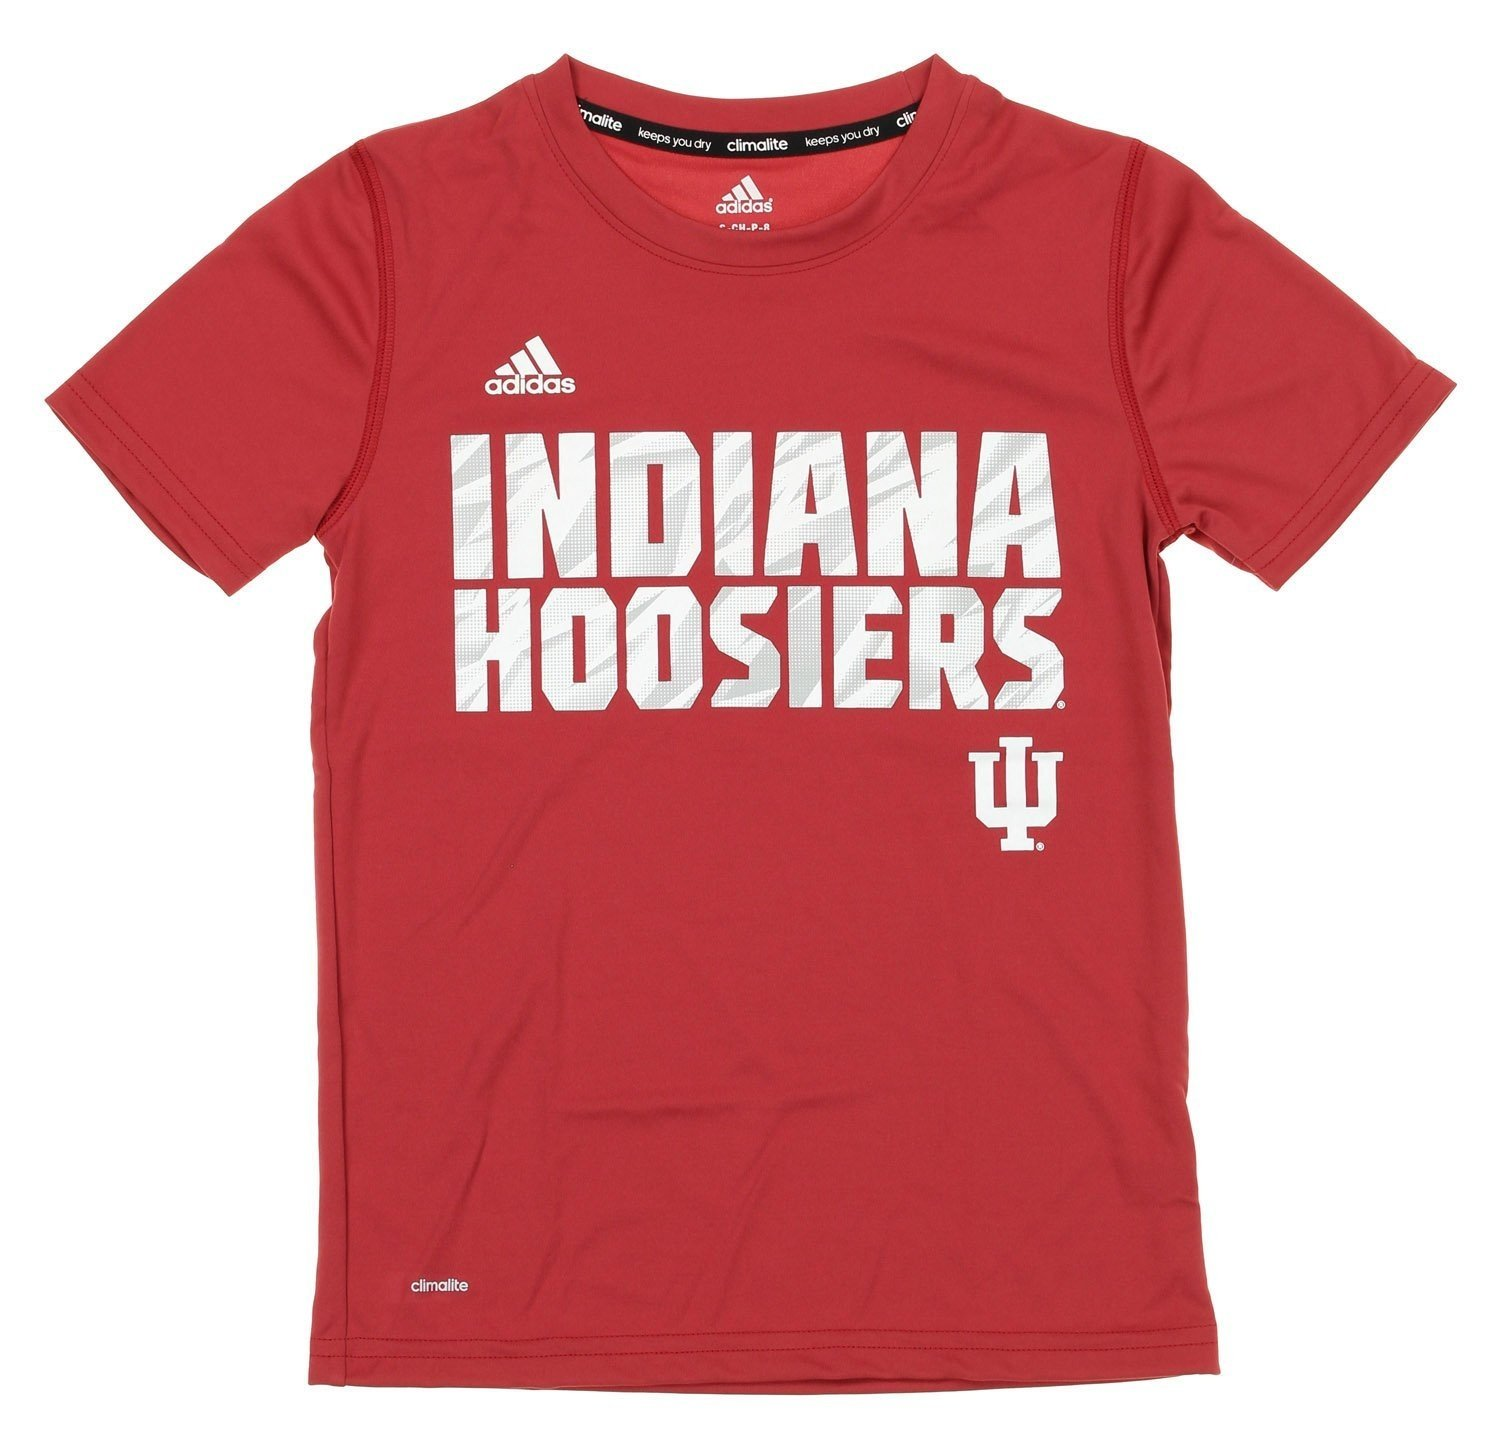 Indiana Hoosiers Adidas Youth White//Red Climalite Performance Shirt